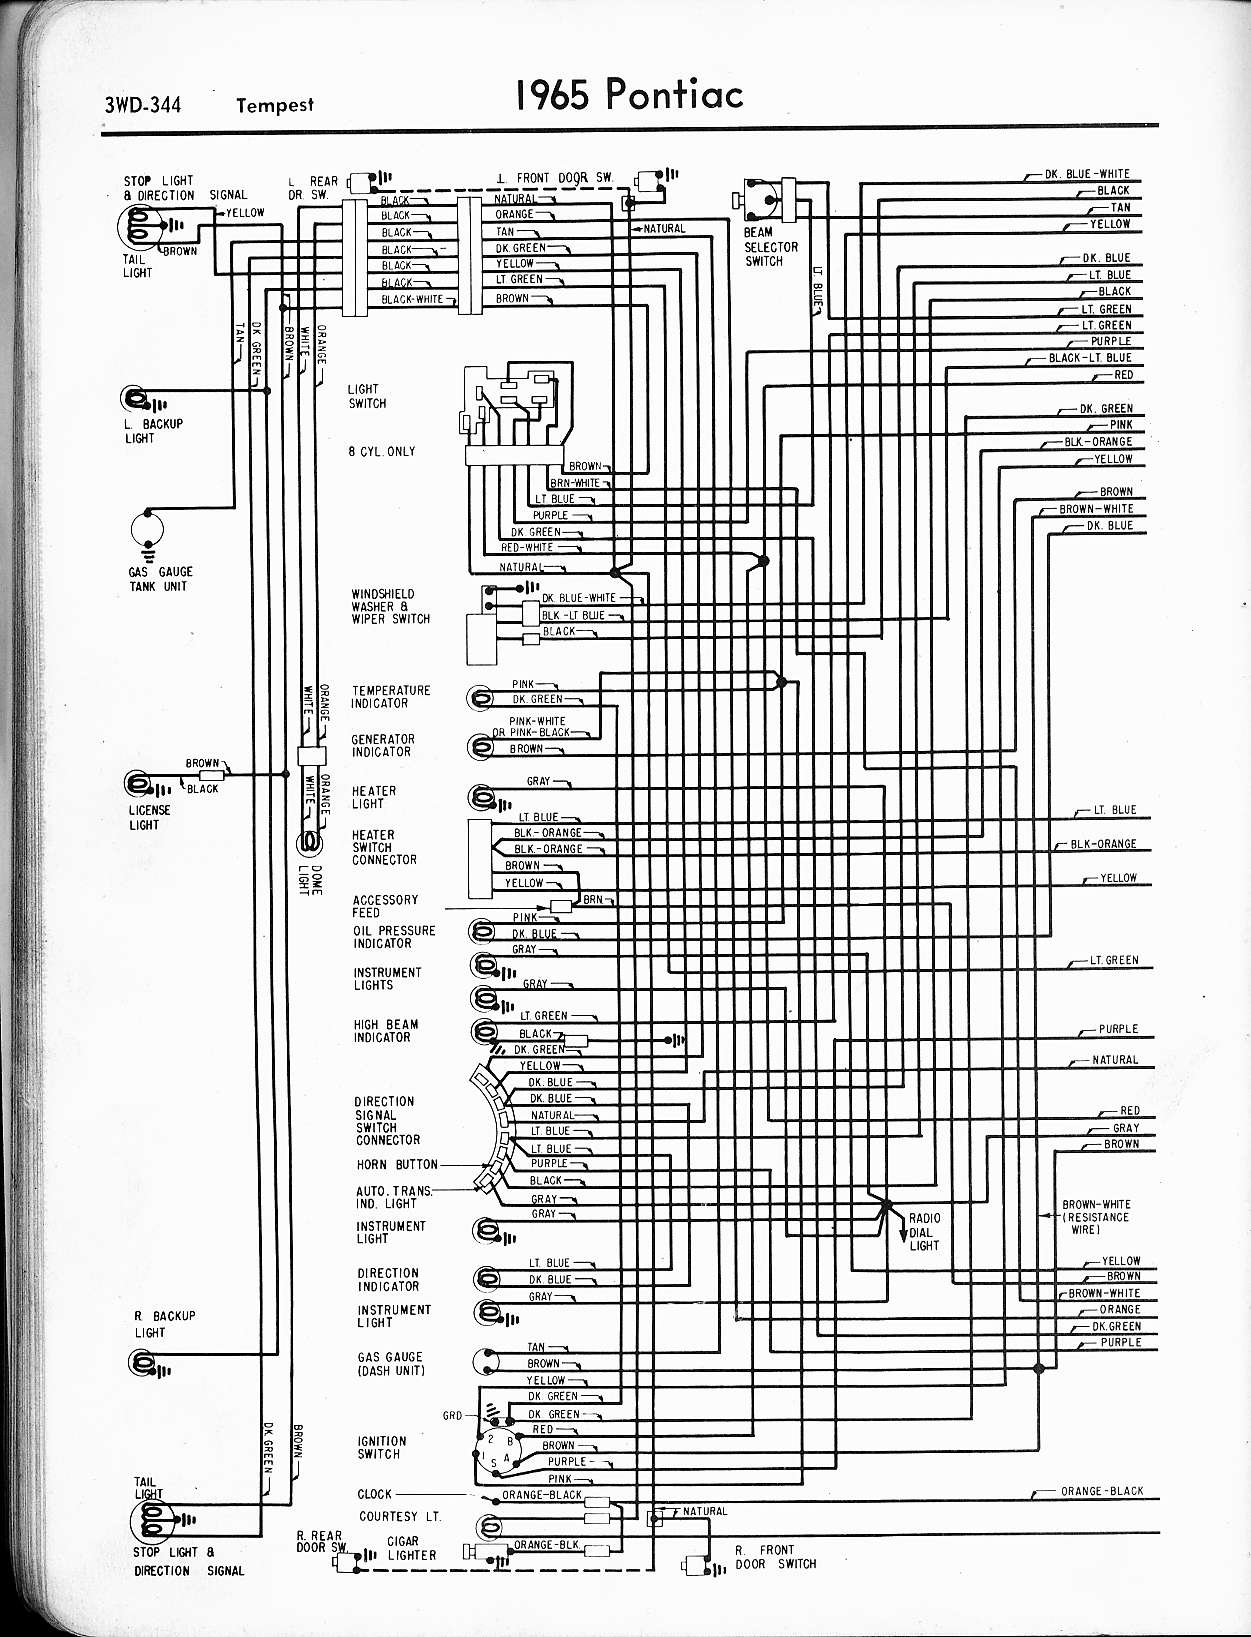 hight resolution of 1965 ford thunderbird wiring diagram free download data wiring diagram rh 3 hvacgroup eu 1964 thunderbird wiring diagram 1966 thunderbird wiring diagram